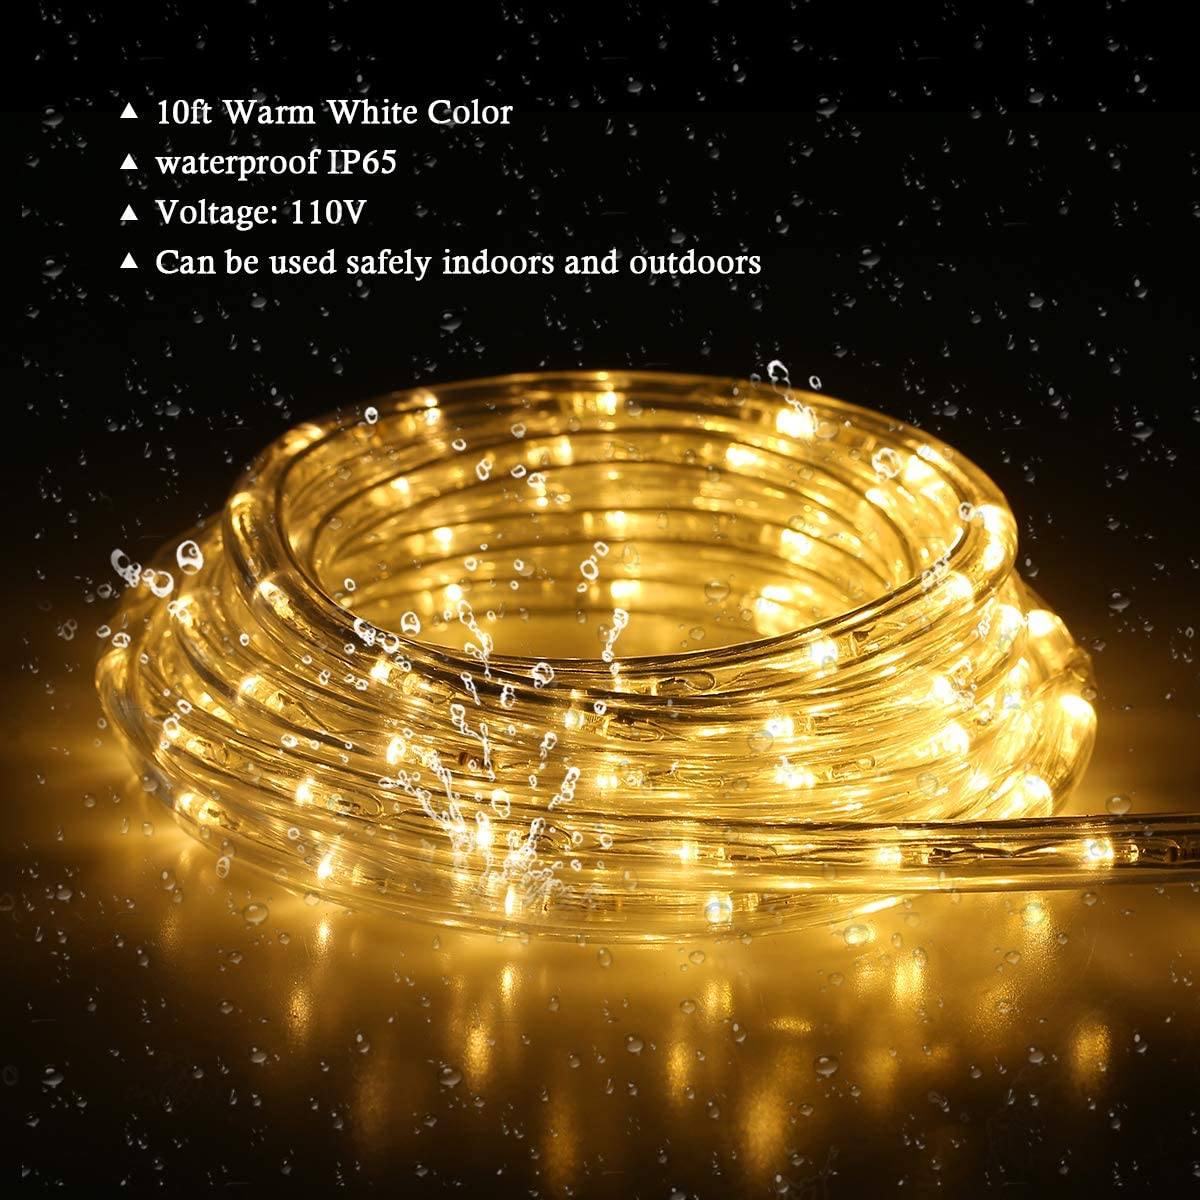 LED Strip Lights Outdoor Waterproof Decorative Lighting for Eaves Decorations,Backyards Garden and Party Decoration Buyagn 100Ft LED Rope Light Warm White